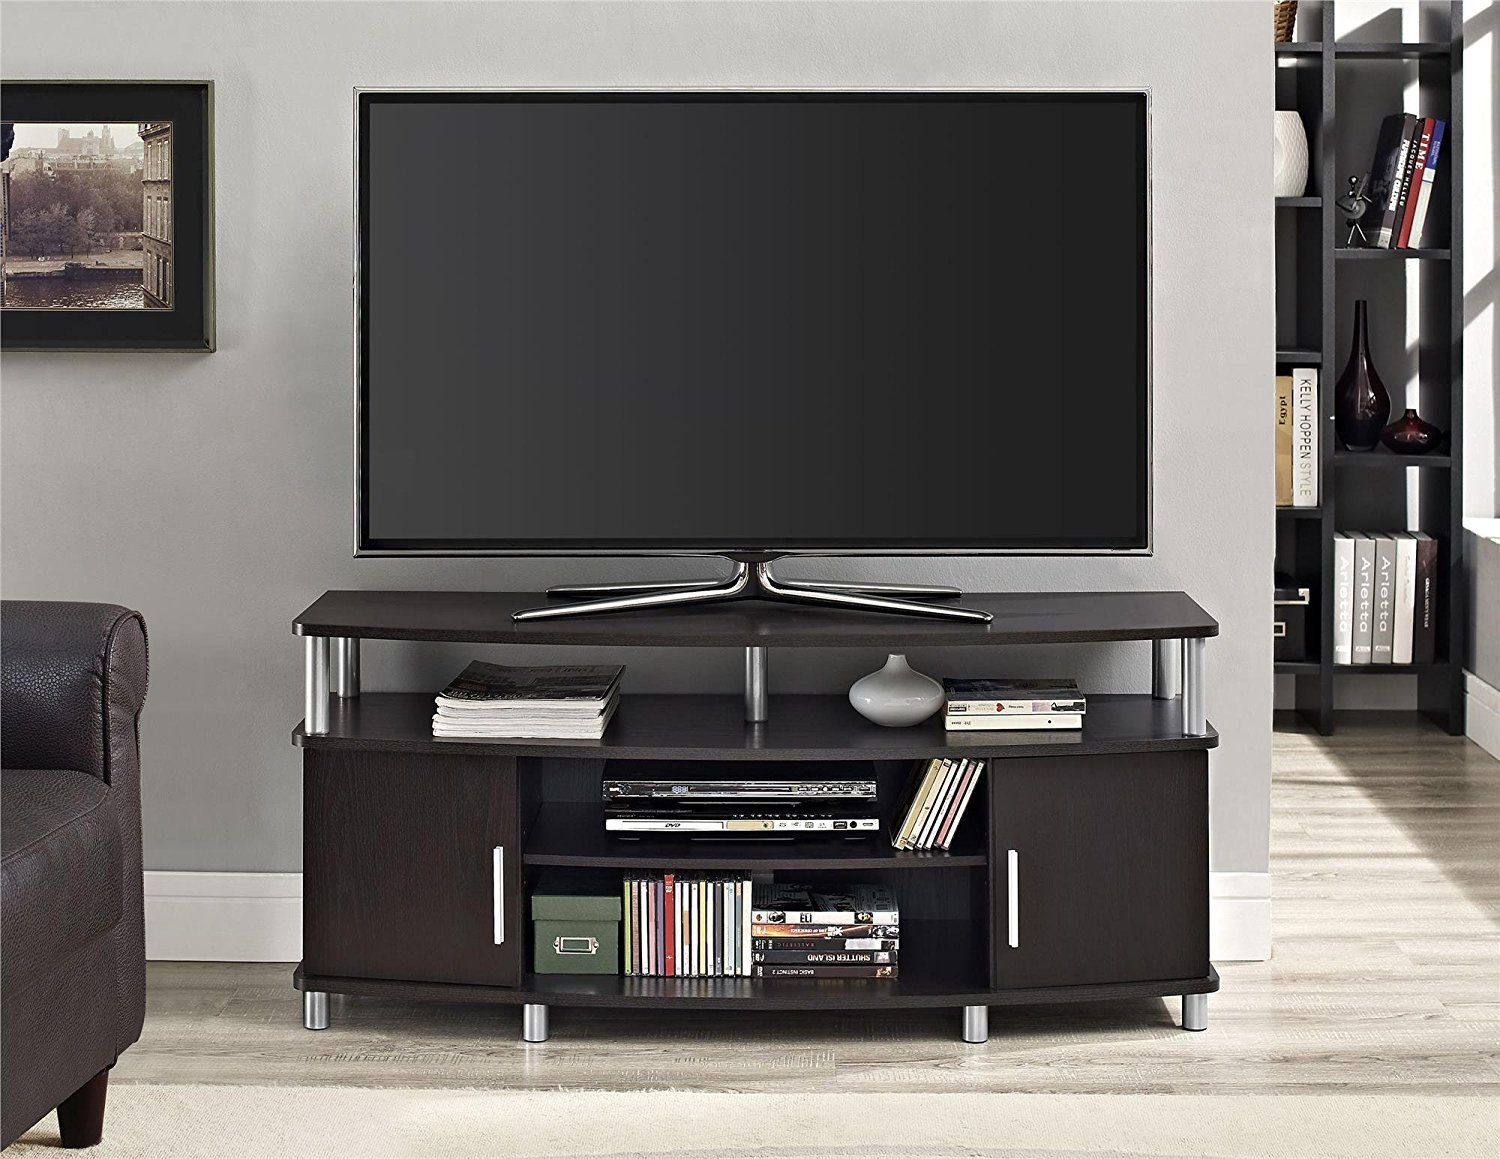 TV on stand